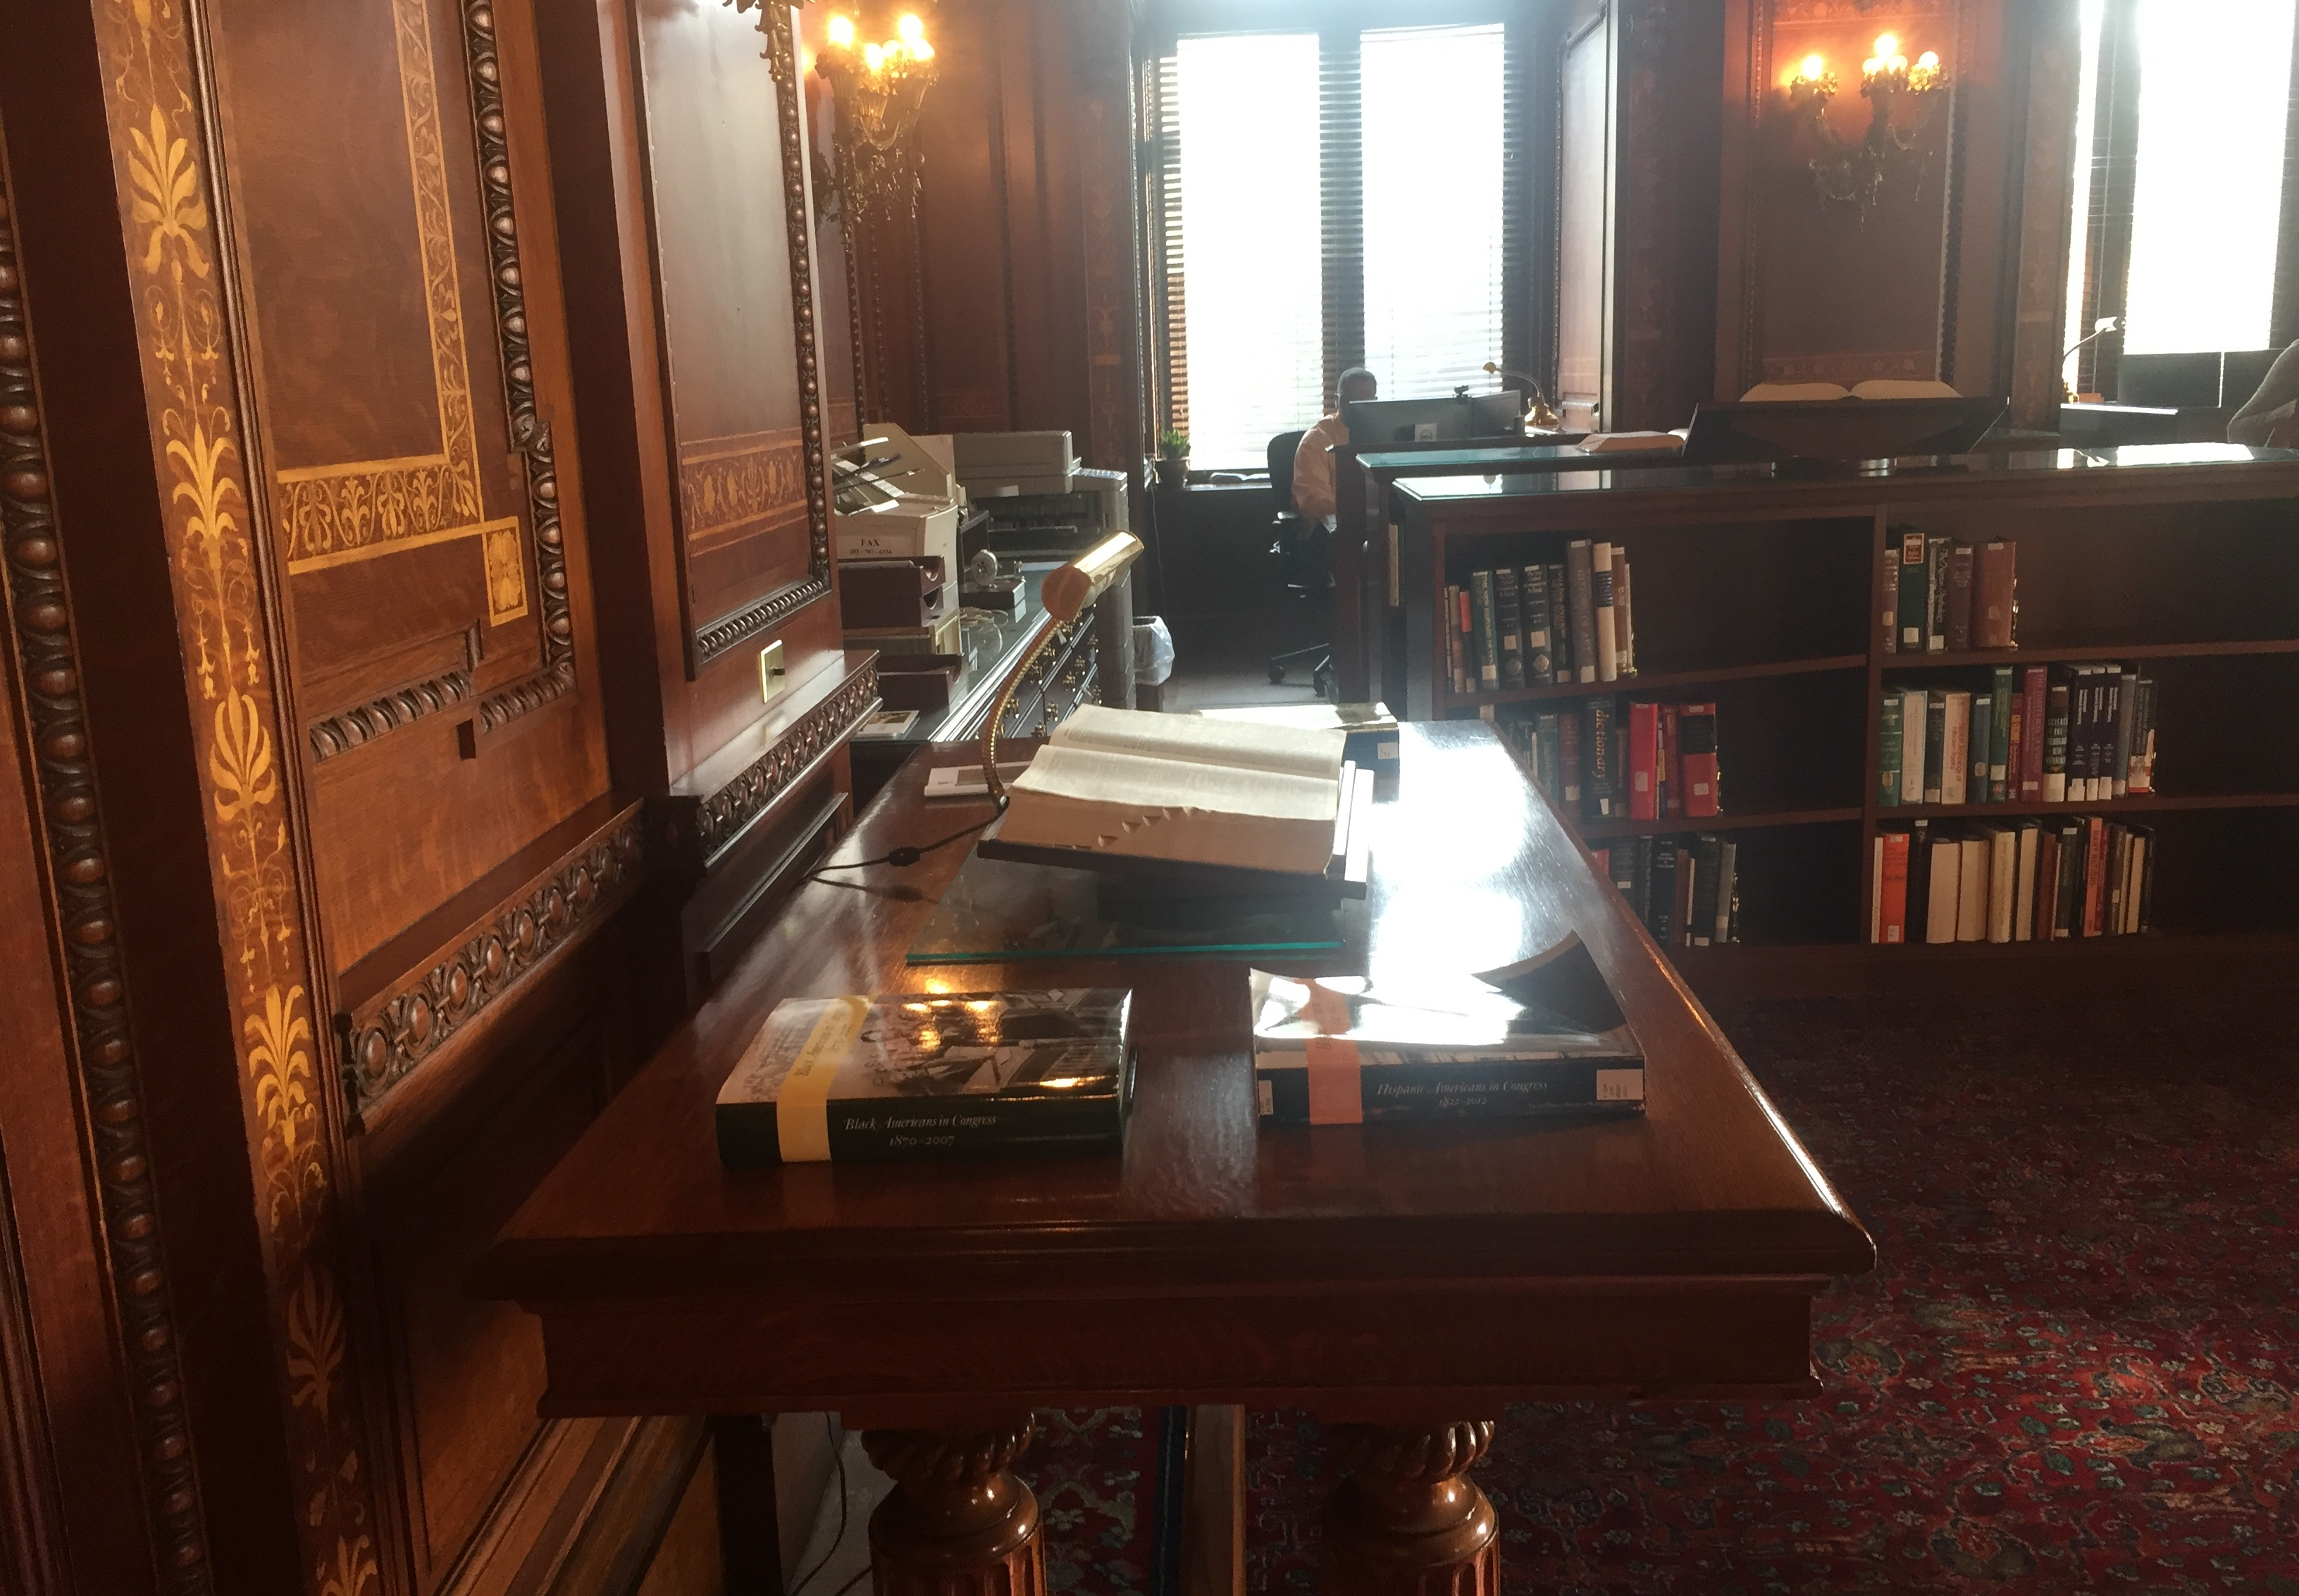 A CRS docent always sits in the Congressional Reading Room. (Alex Gangitano/CQ Roll Call)